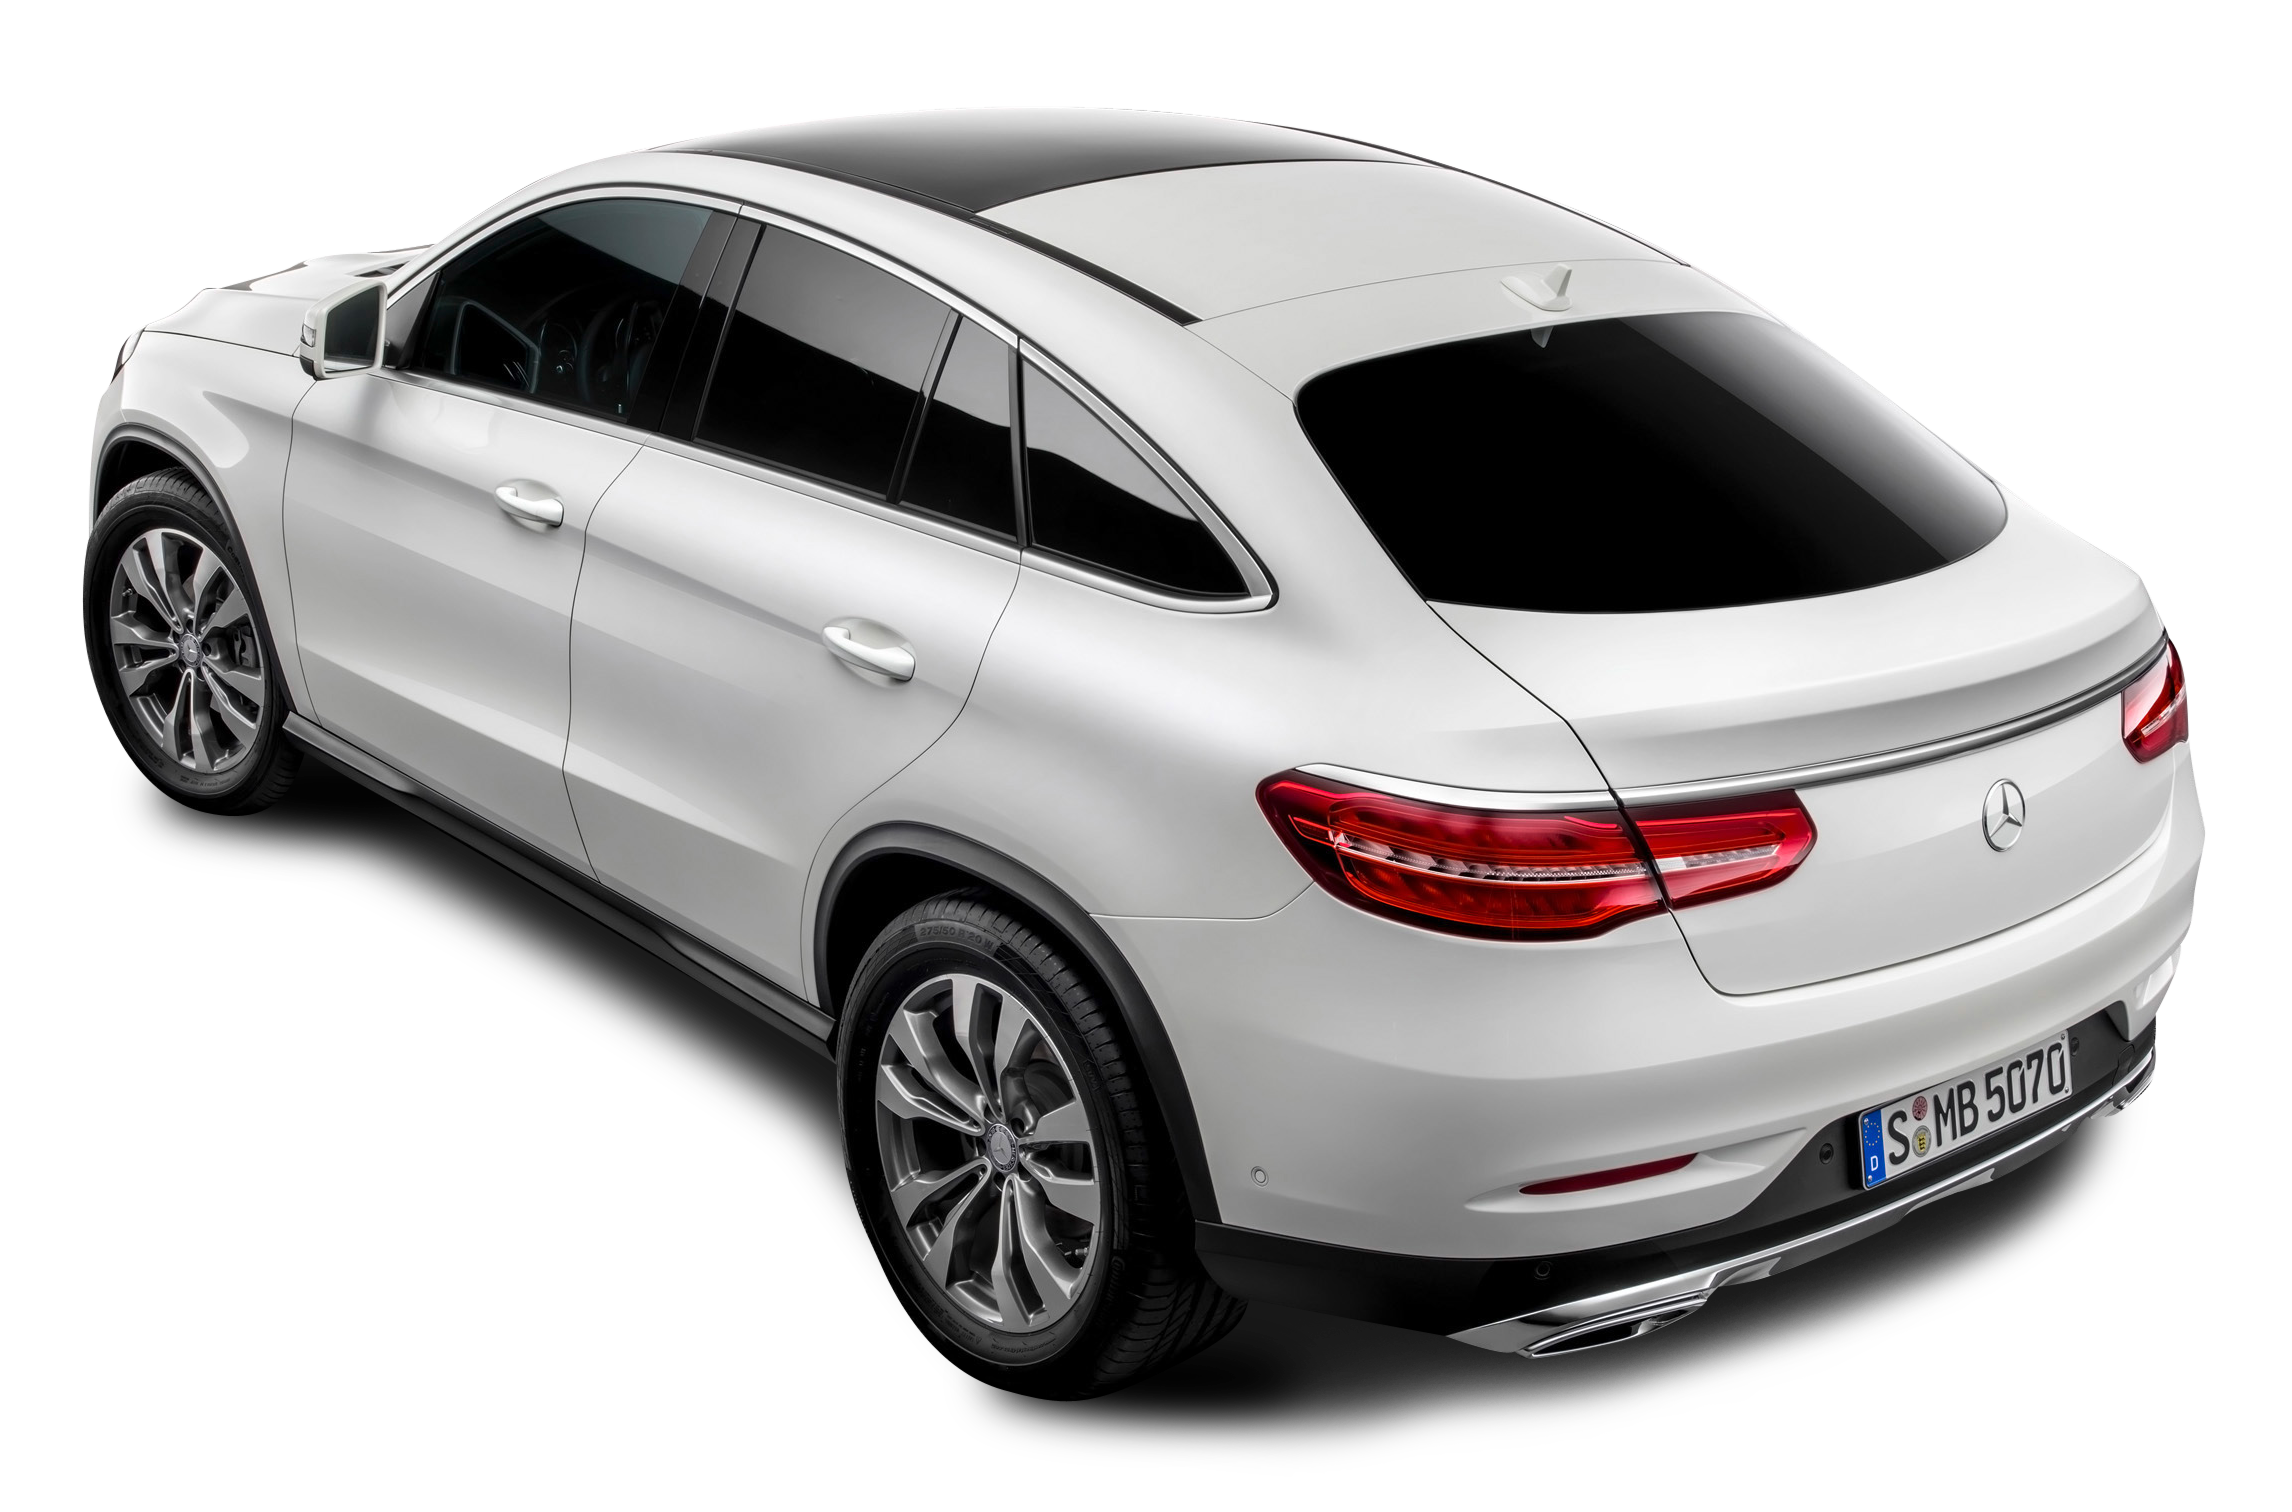 Back of car clipart jpg library library Mercedes Benz Back View White Car PNG Image - PurePNG | Free ... jpg library library